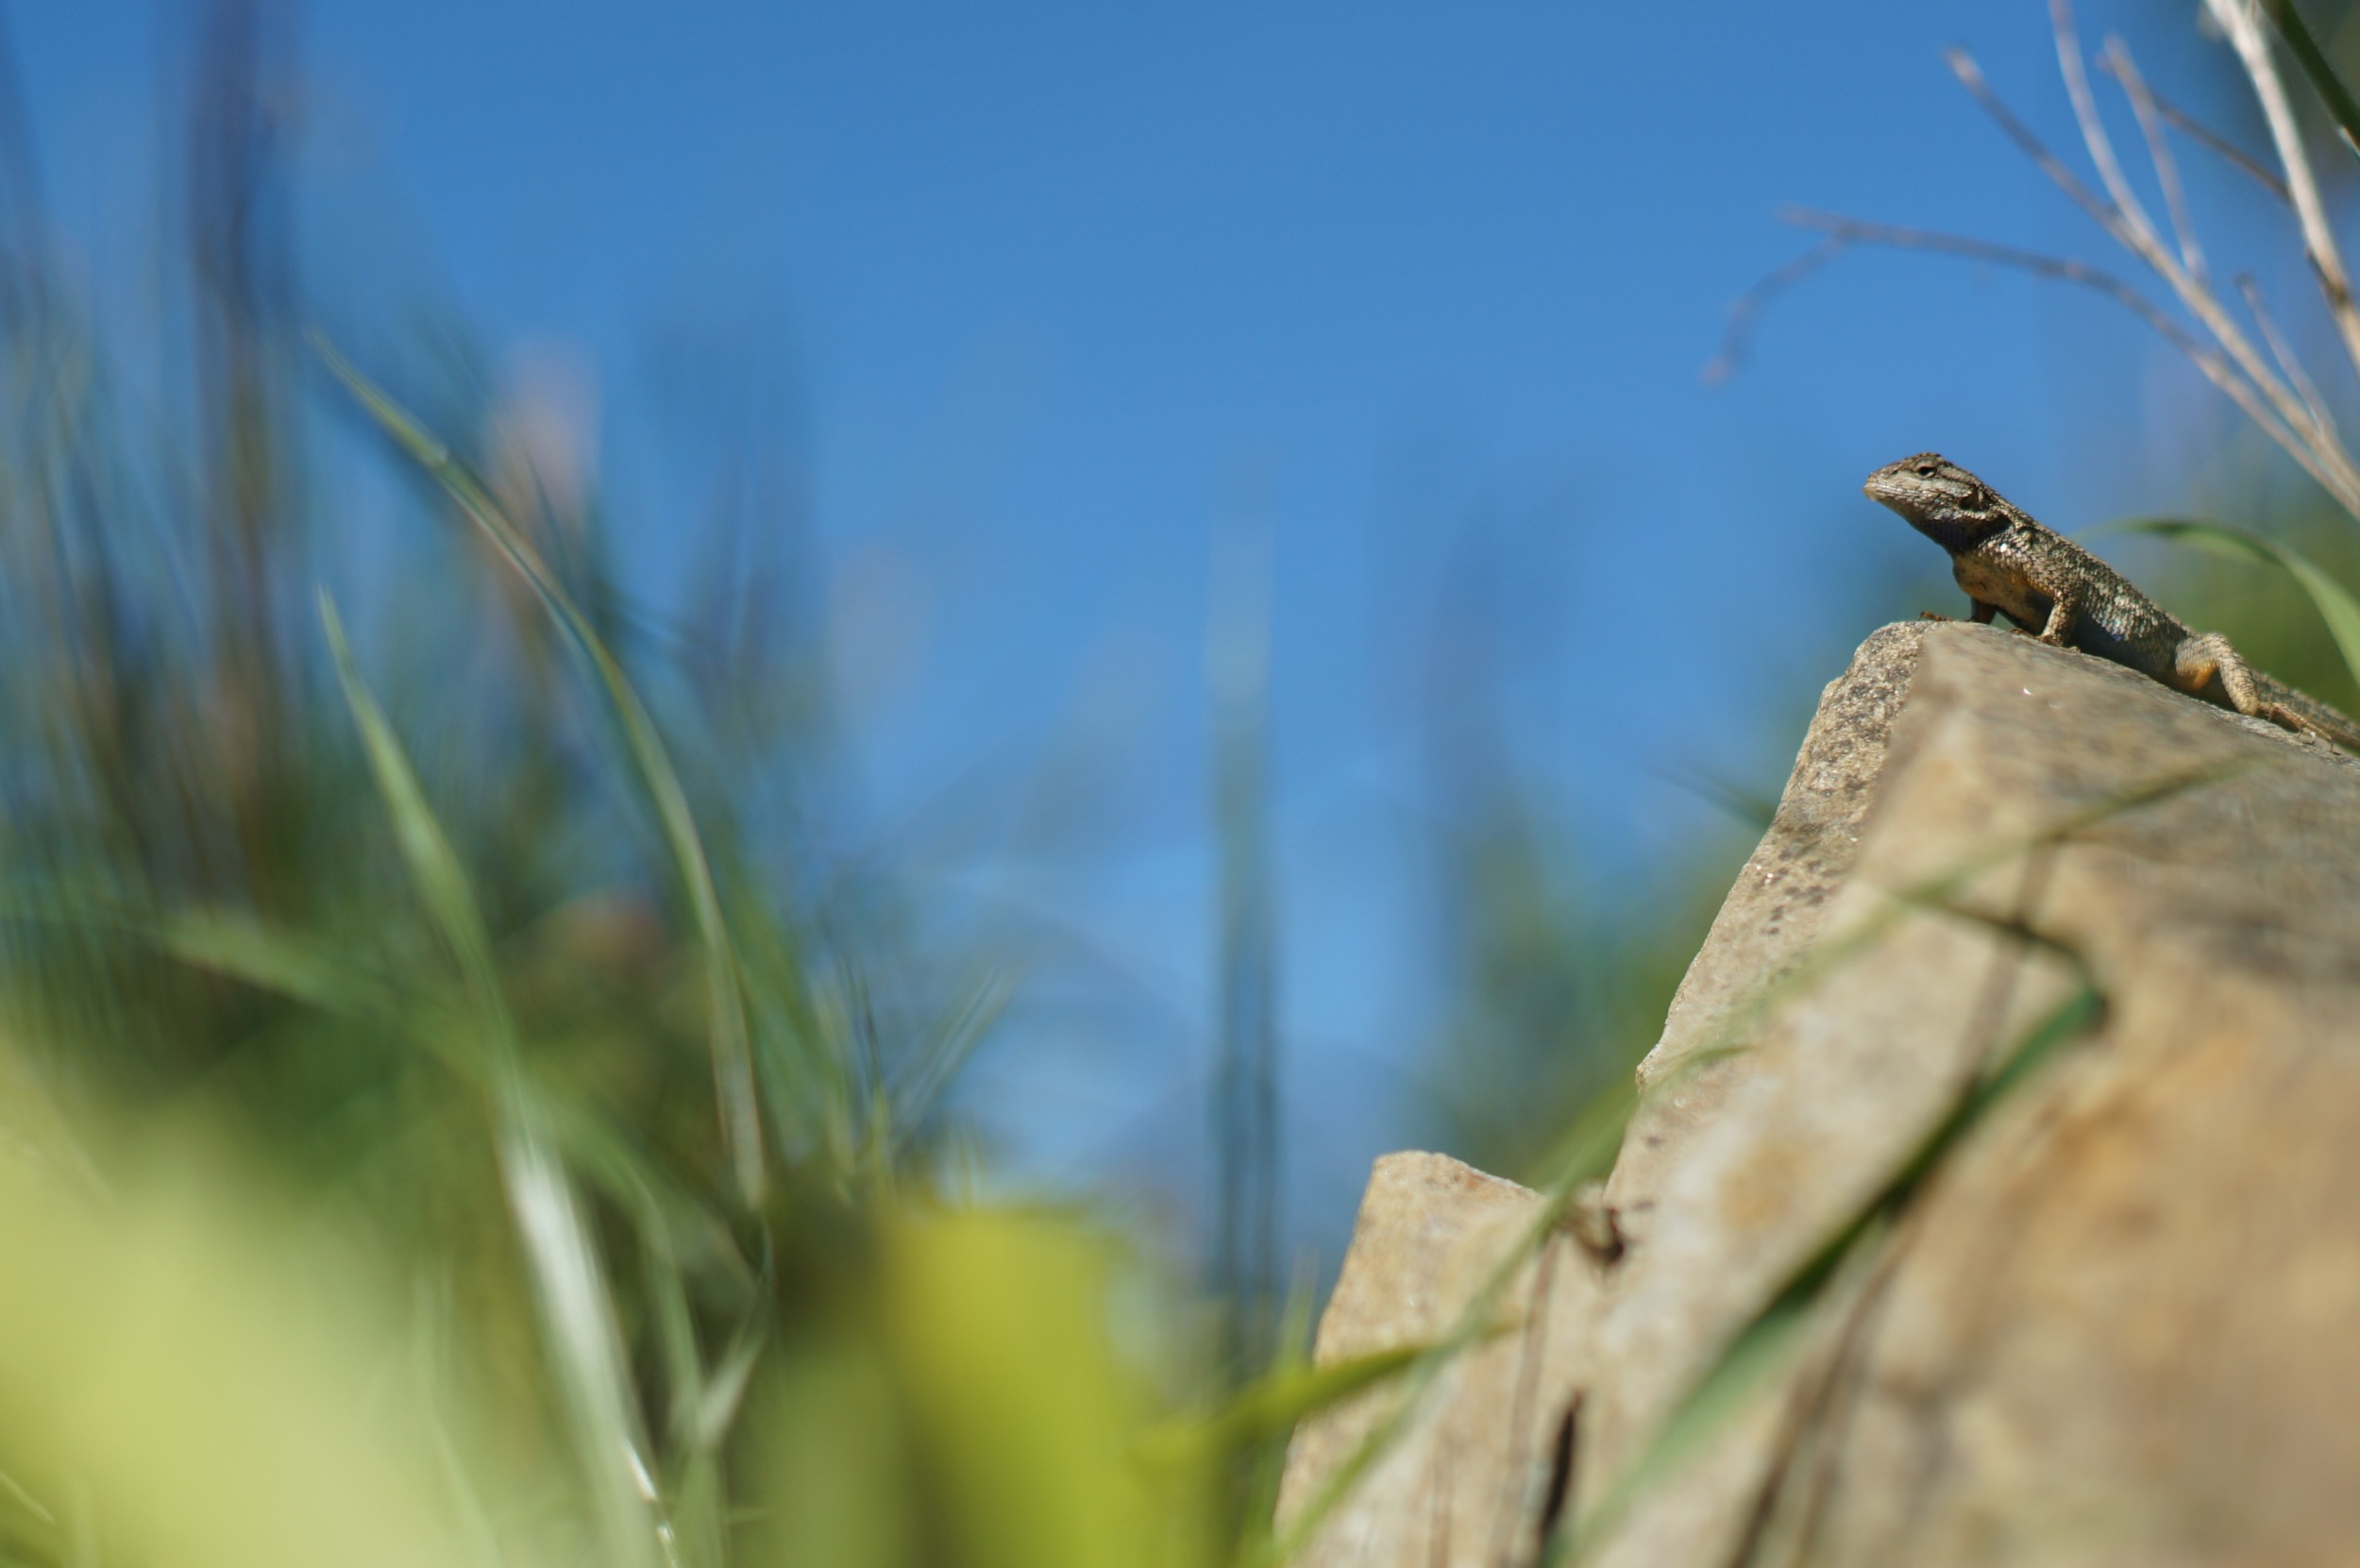 Lizard playing king of the hill... with itself. But it's winning!